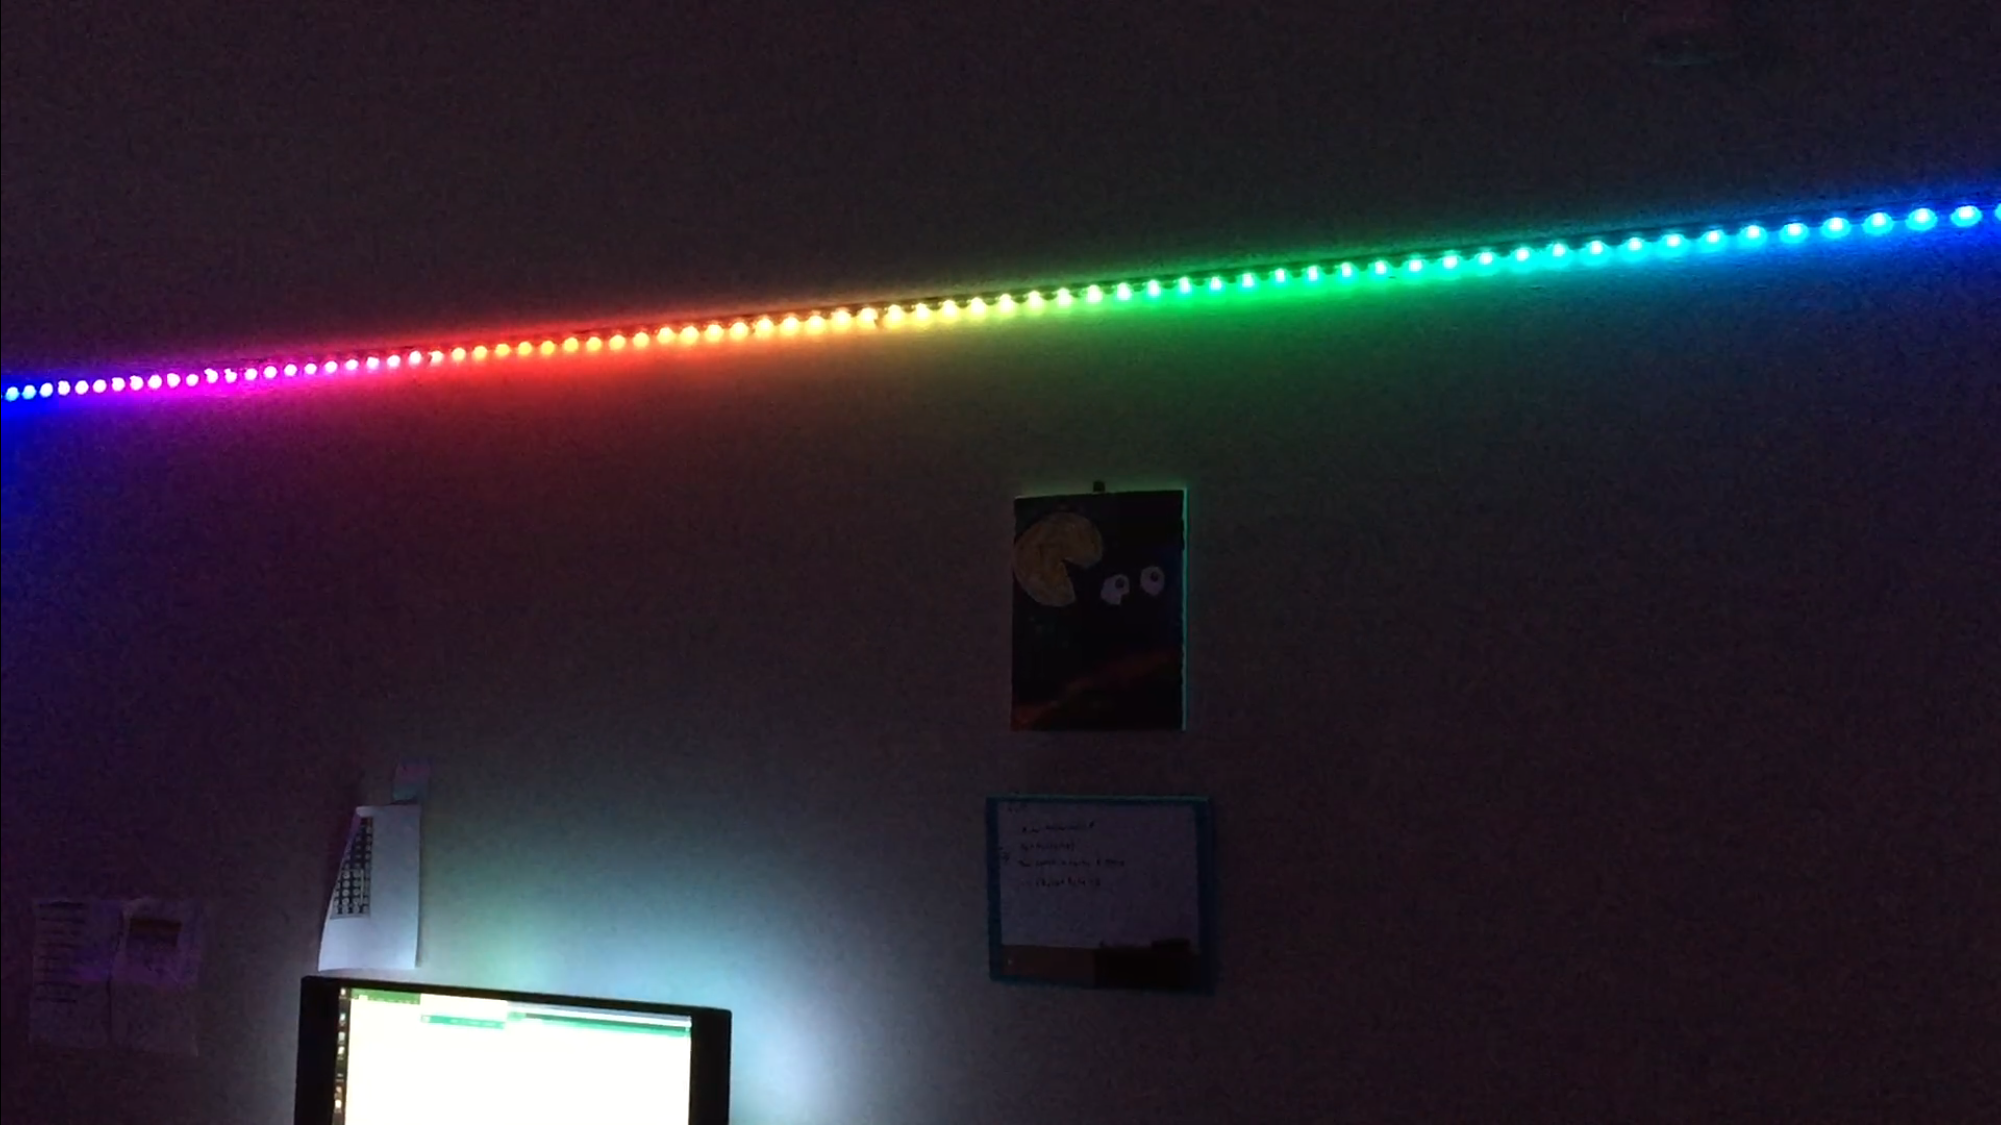 LED Strip Light Controller using Arduino and WS2812B LED strips